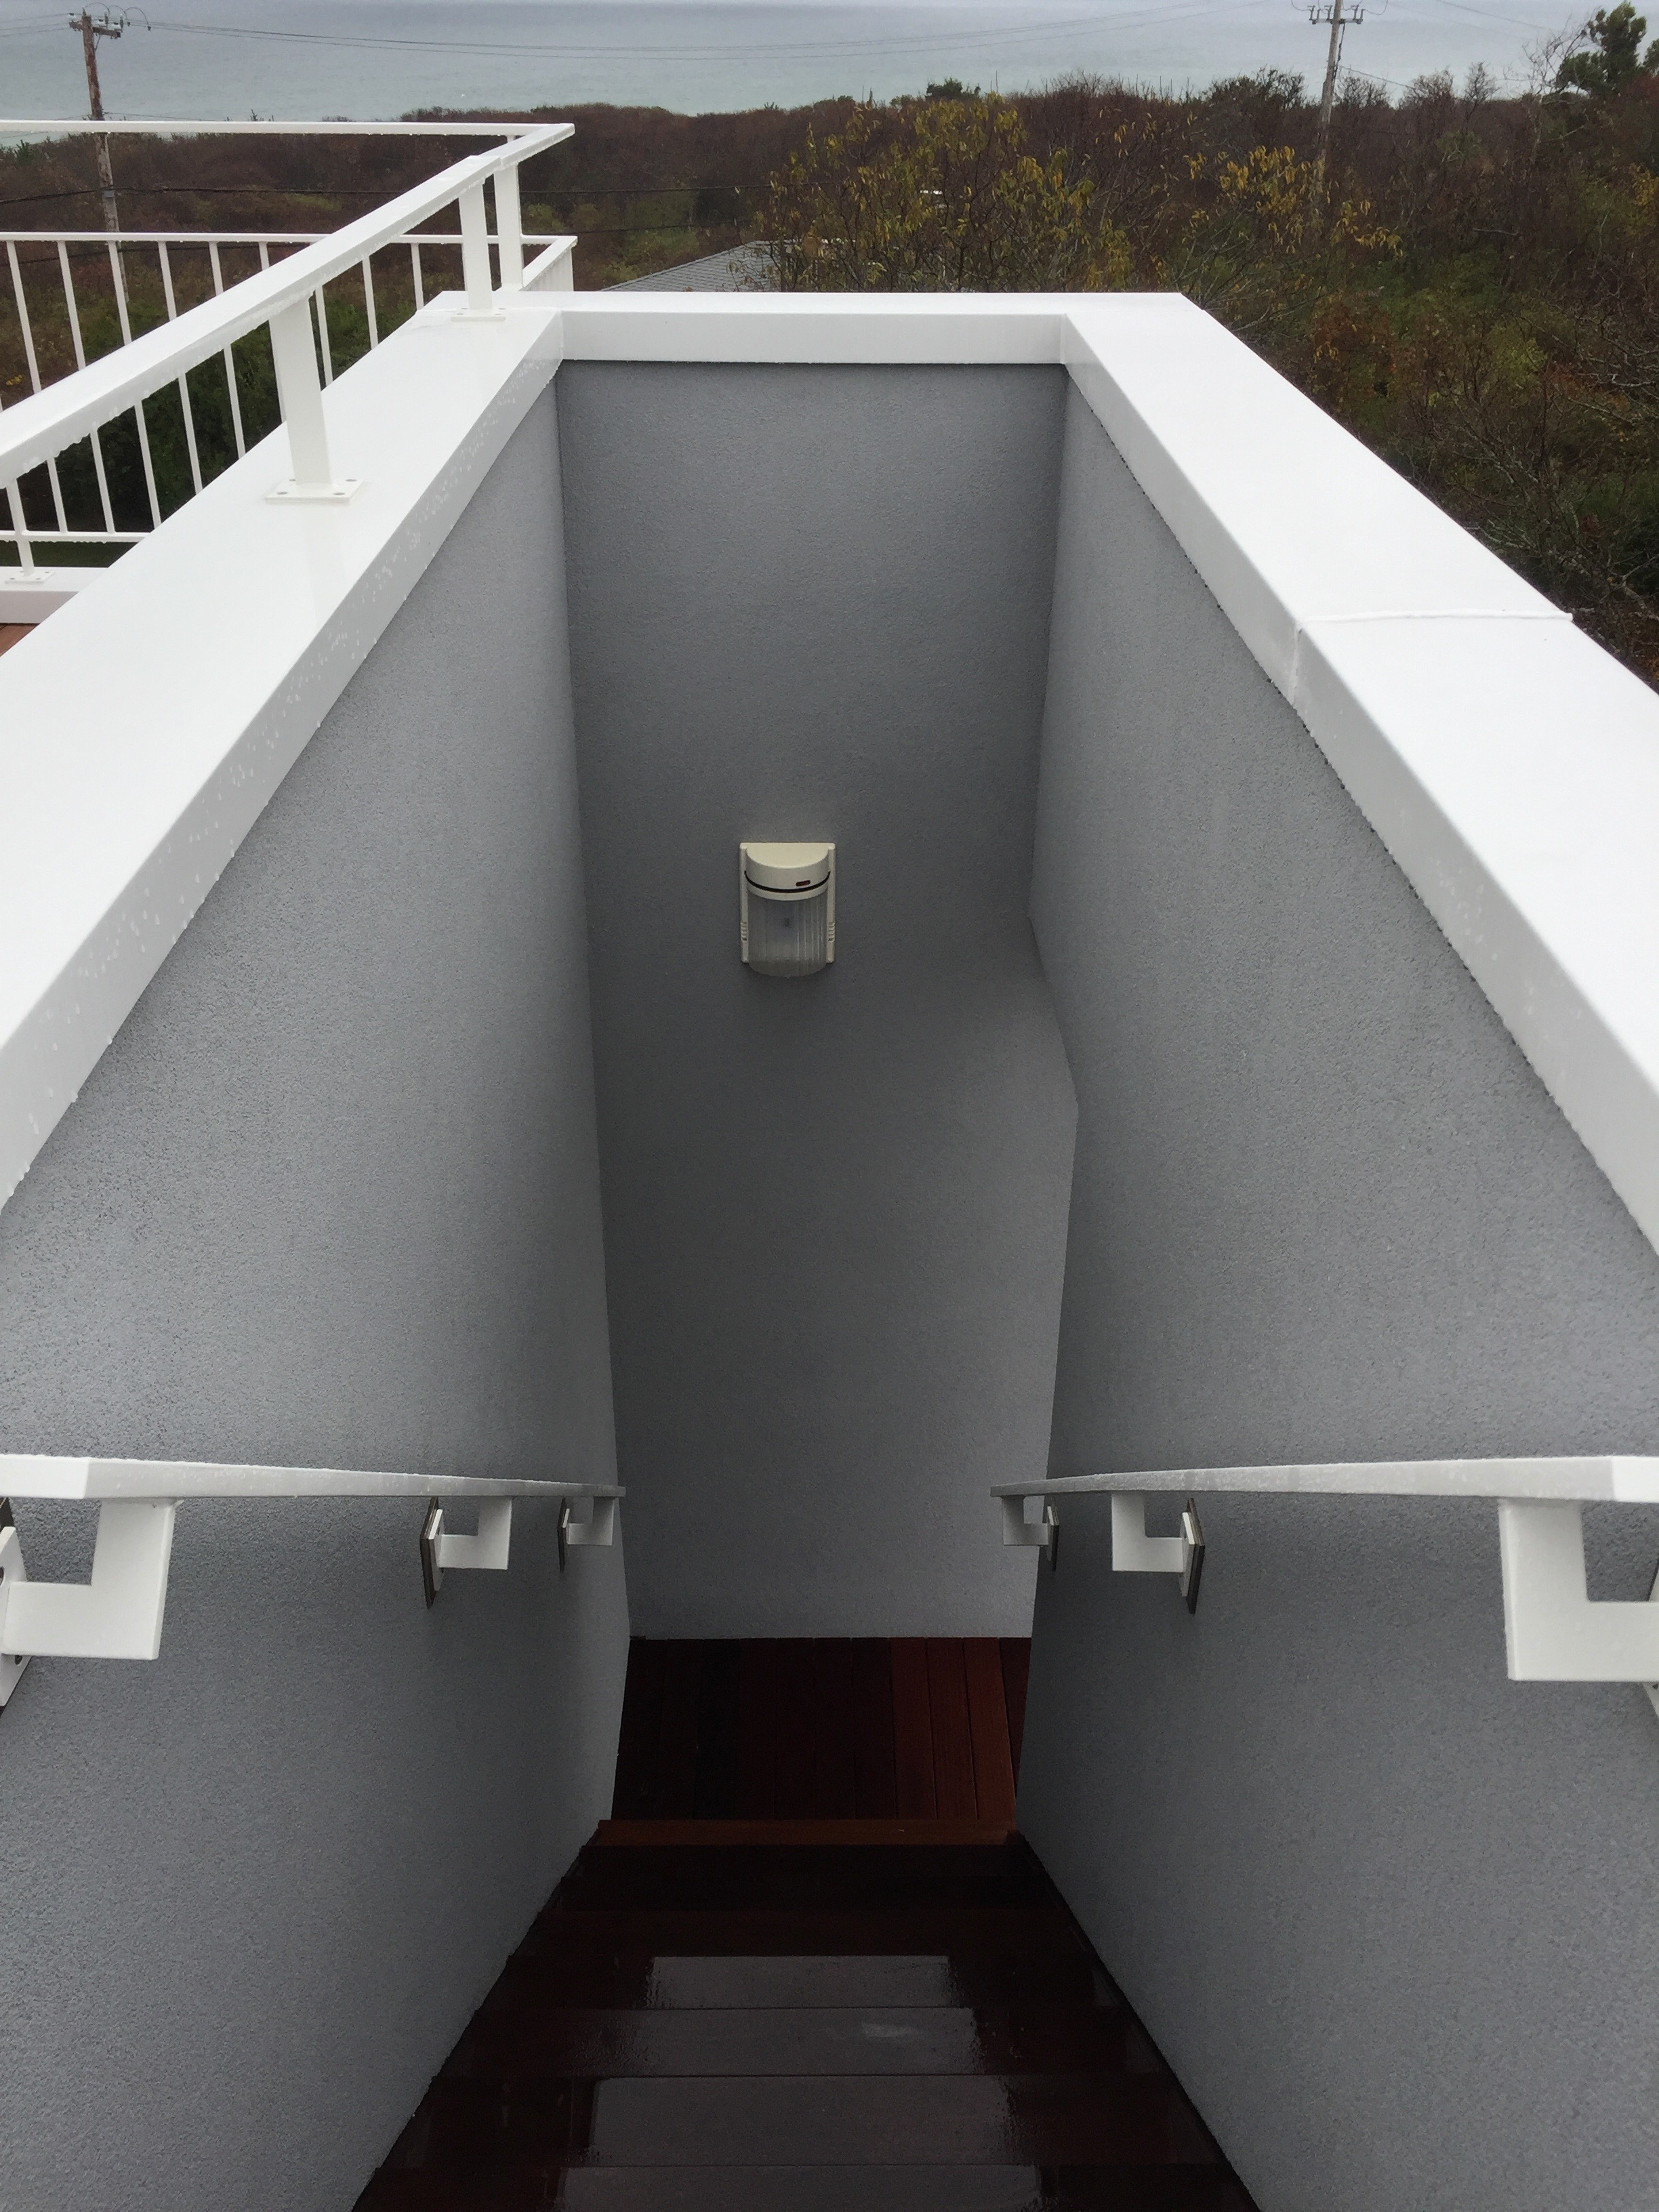 ROOF DECK EXTERIOR STAIR